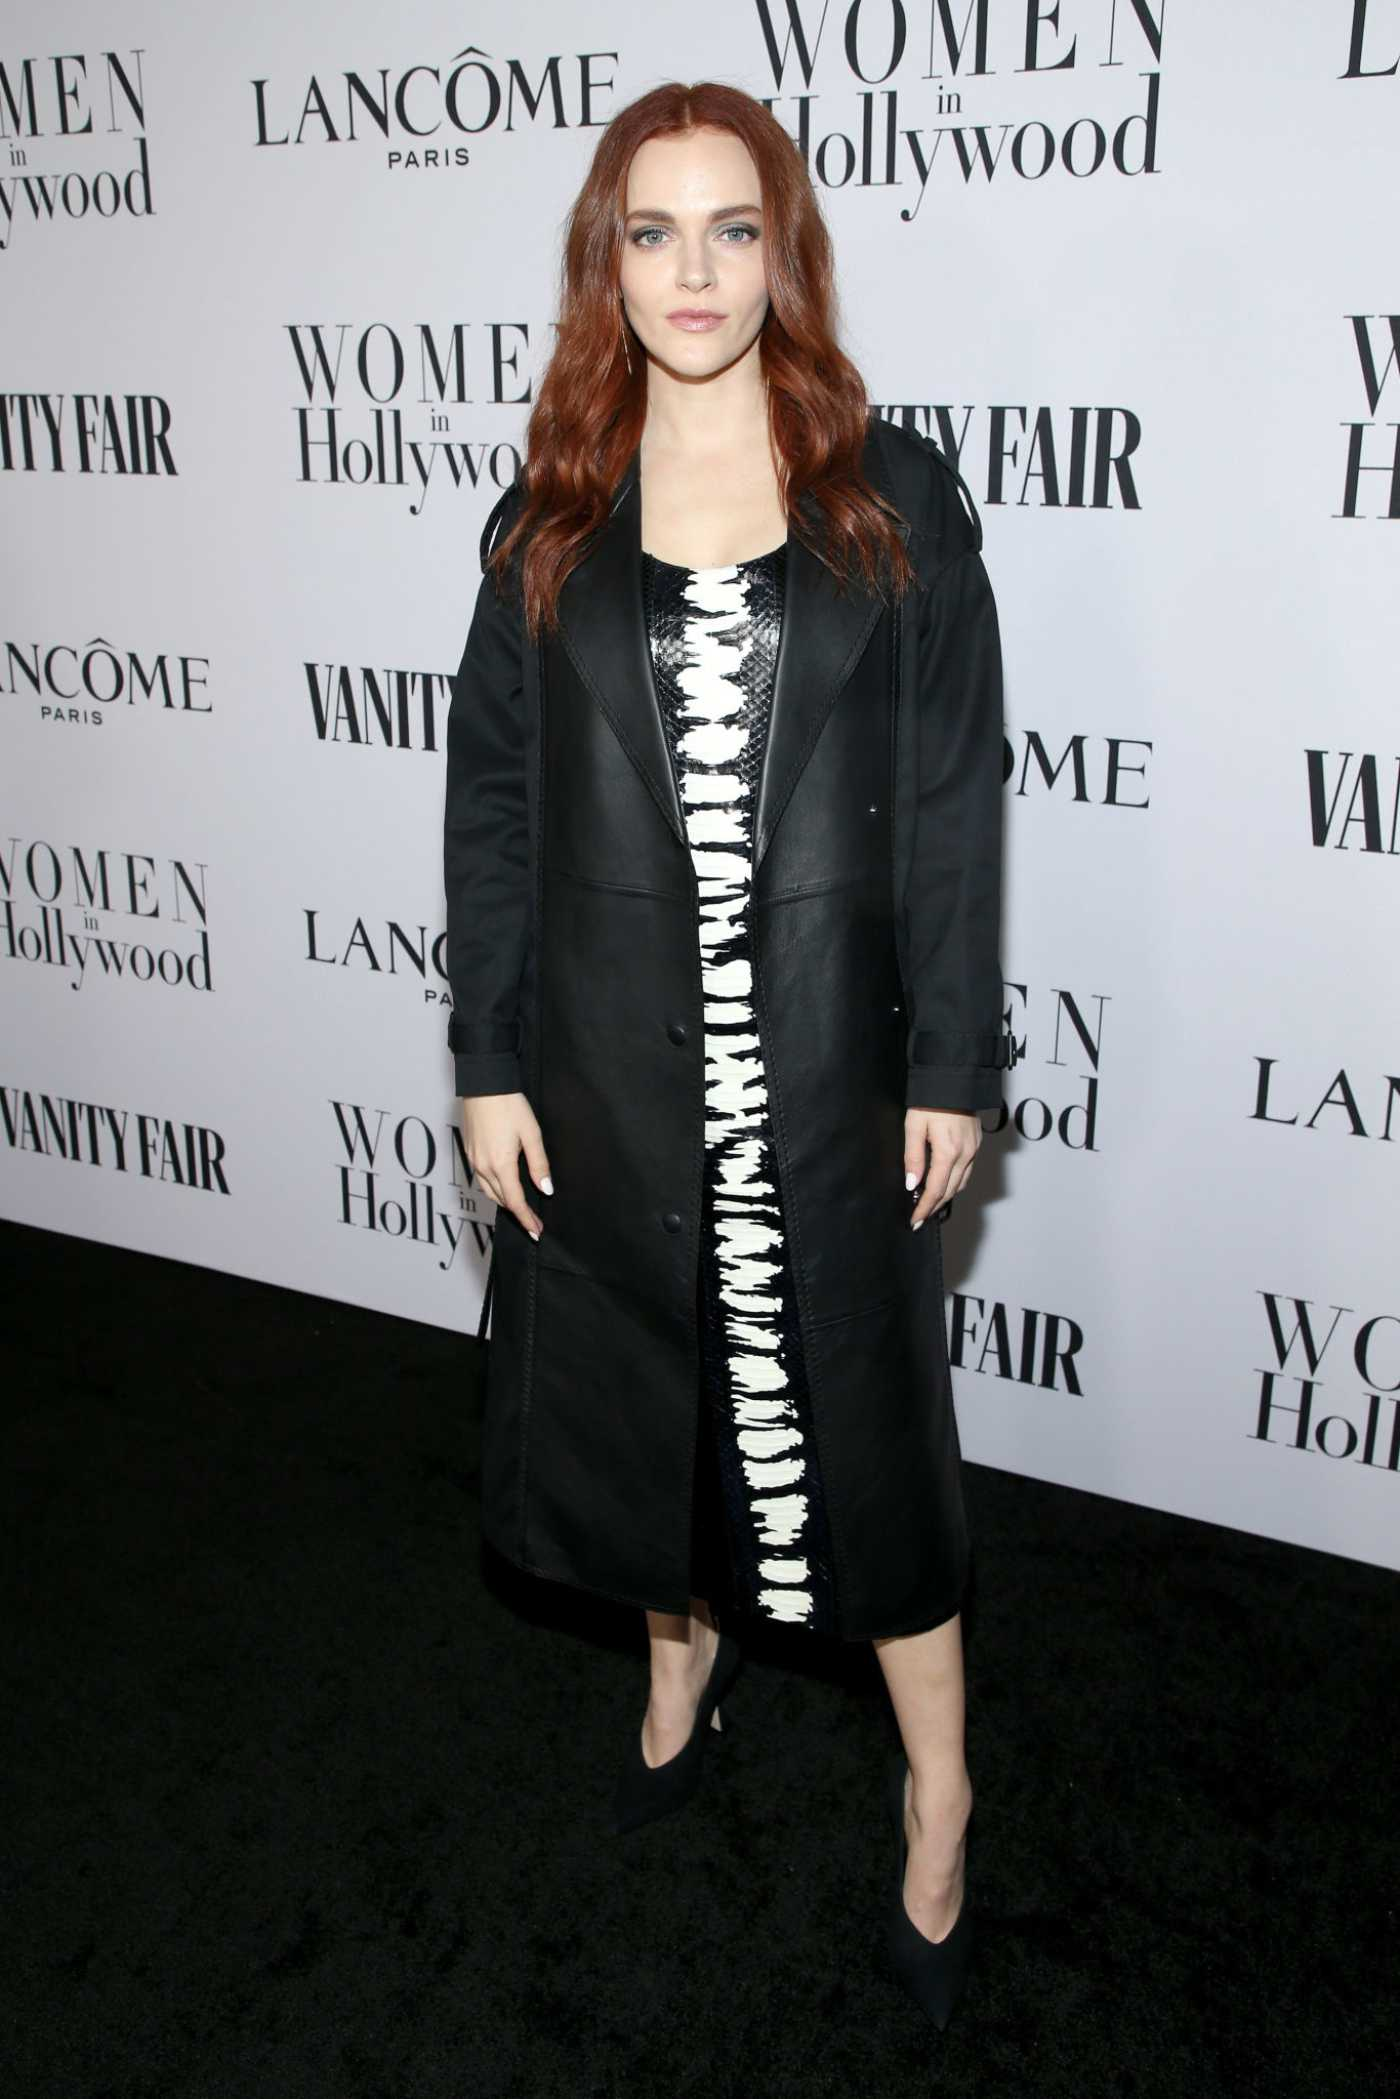 Madeline Brewer Attends the Vanity Fair and Lancome Women in Hollywood Celebration at SoHo House in West Hollywood 02/06/2020